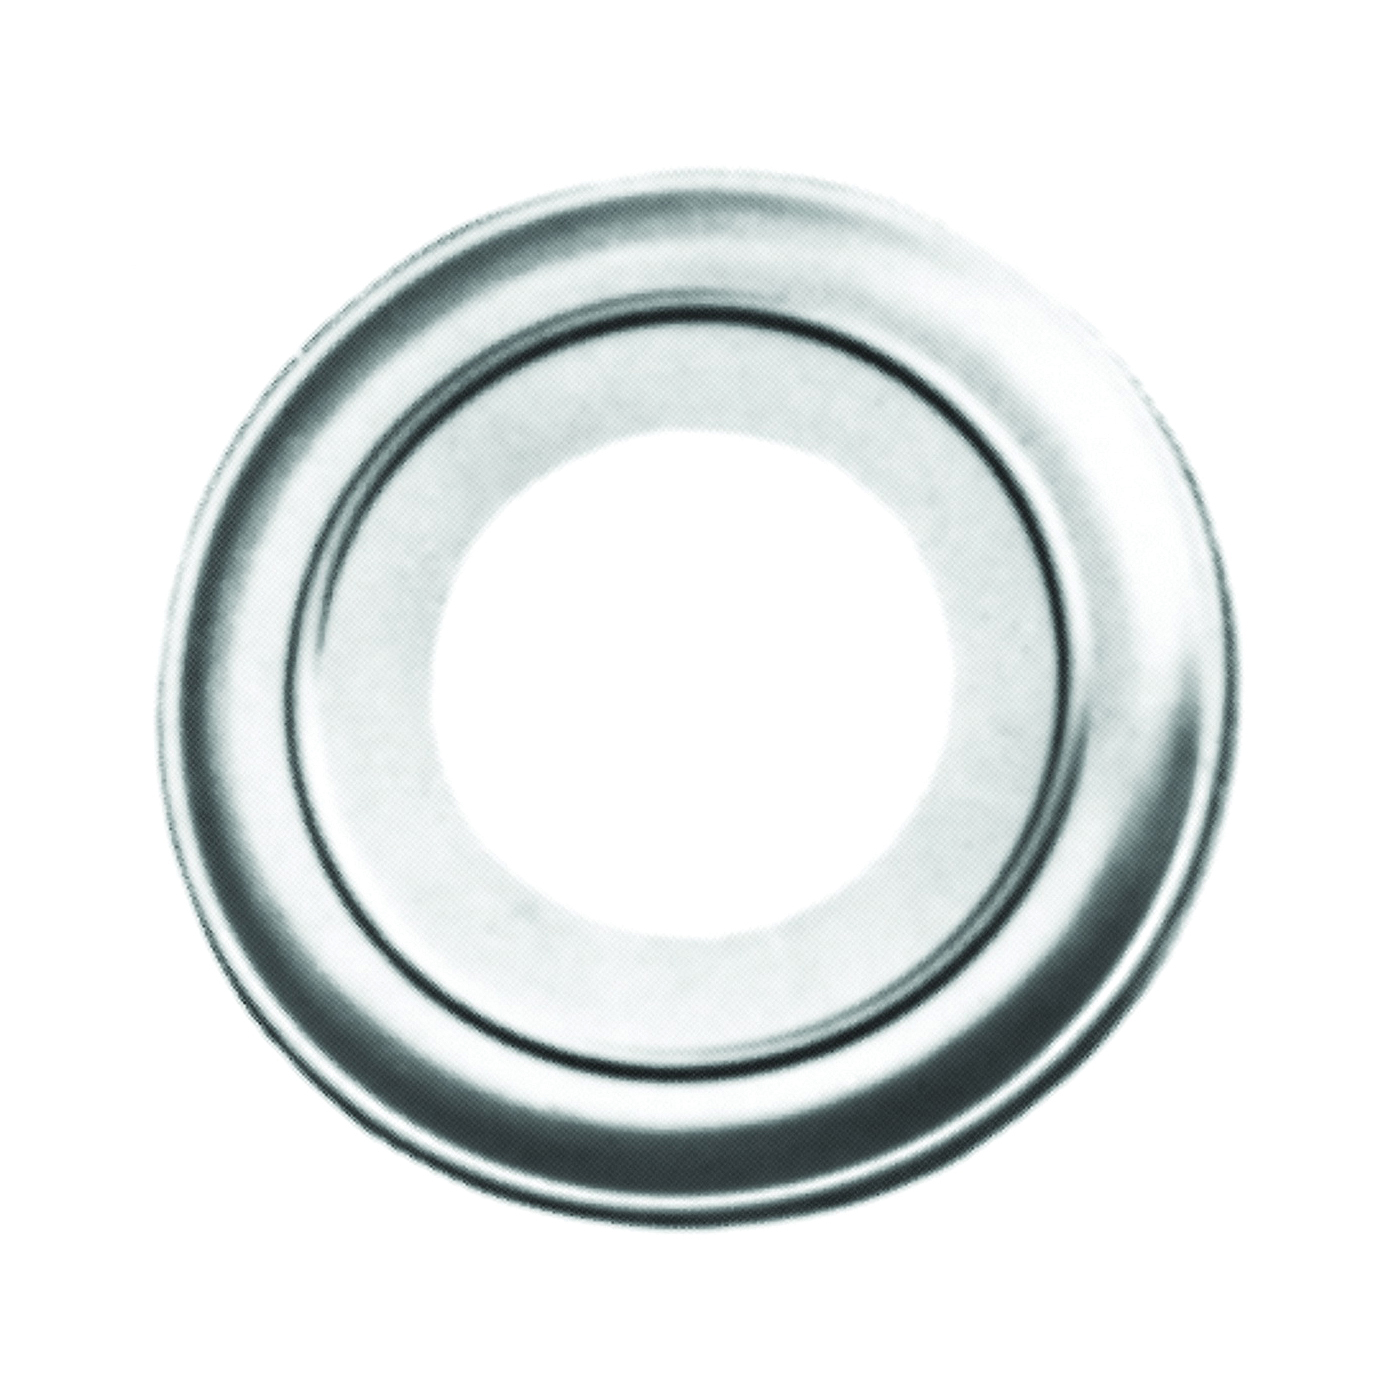 Picture of AmeriVent 4EVC Vent Collar, 4 in Vent Hole, Galvanized Steel